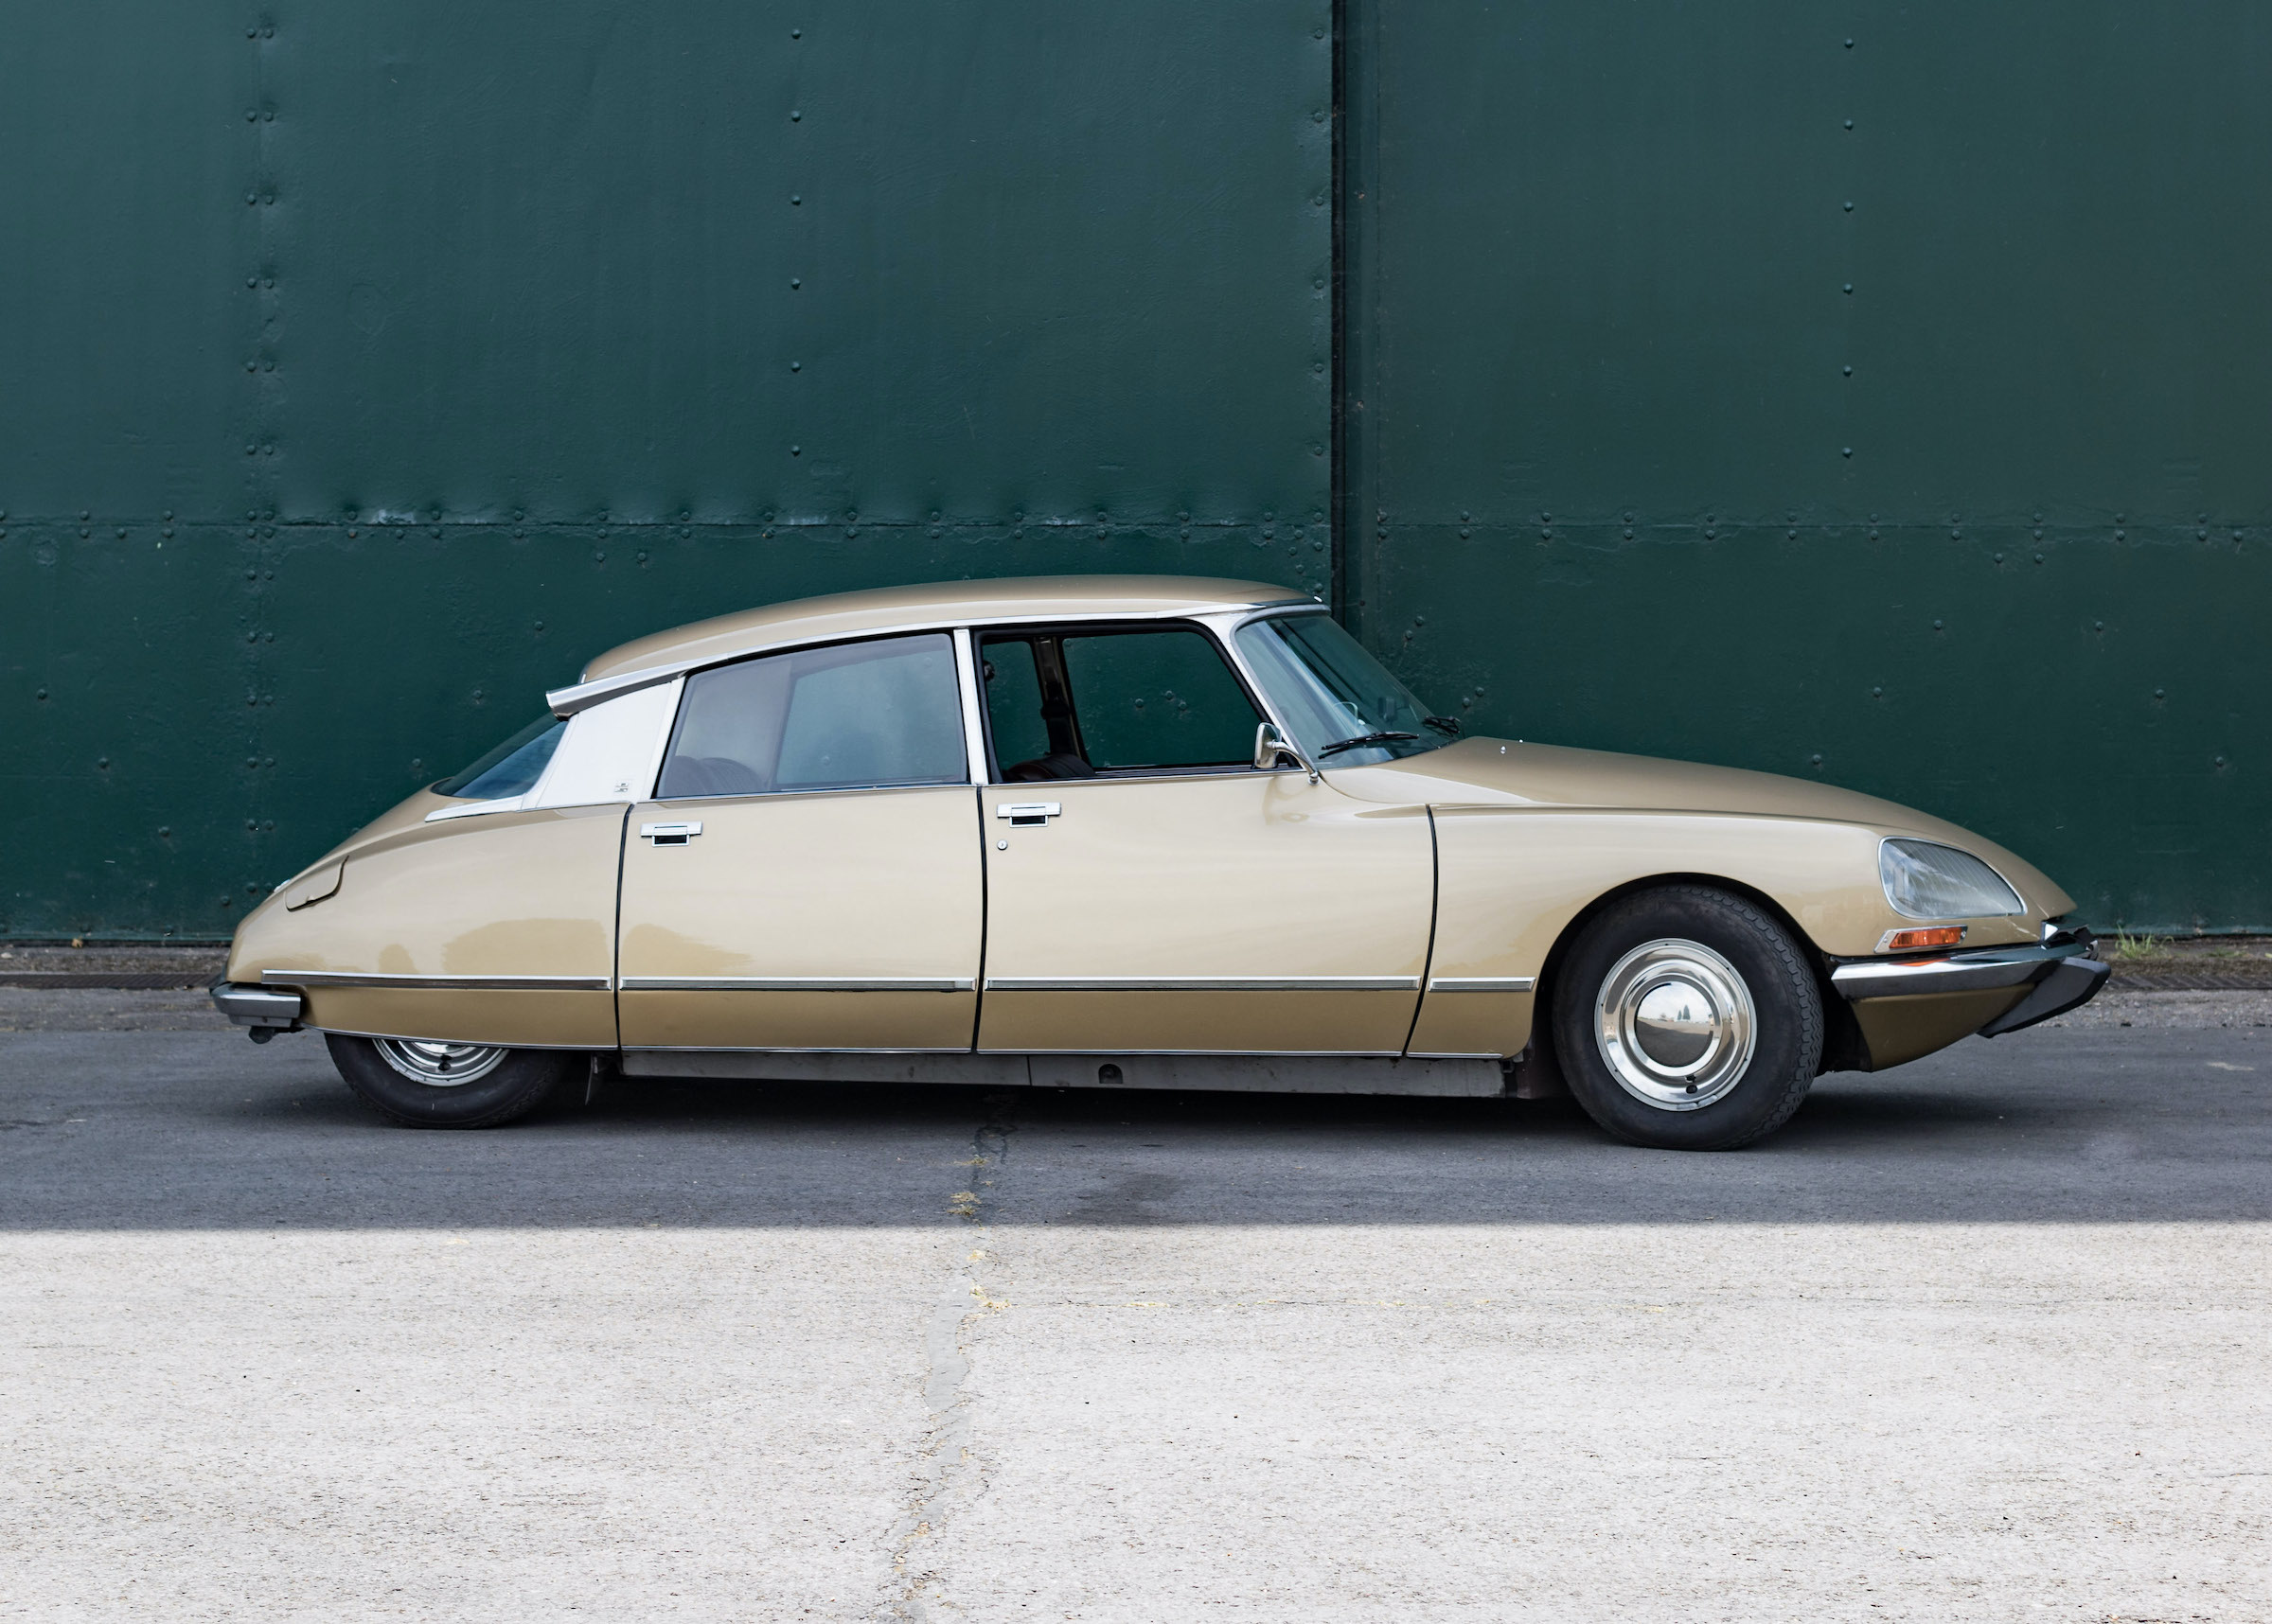 This Citroën DS could be the perfect electric classic conversion